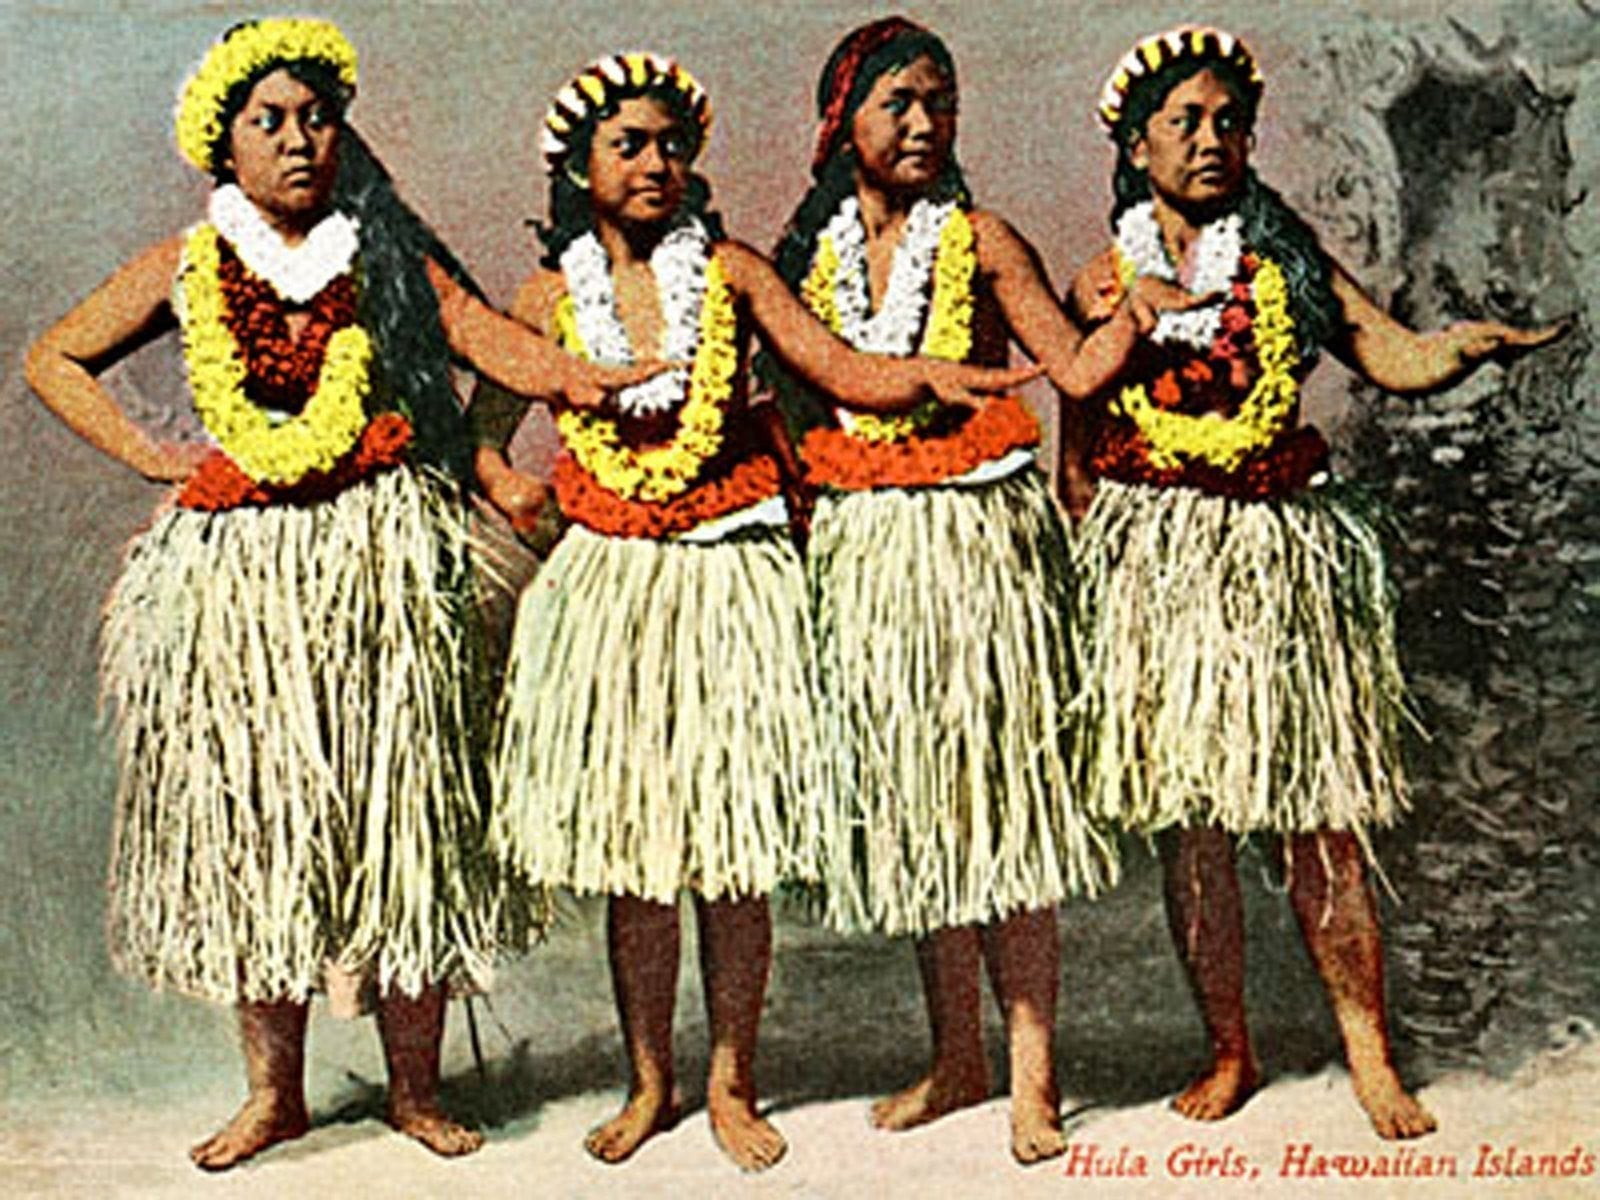 History of hula dancing